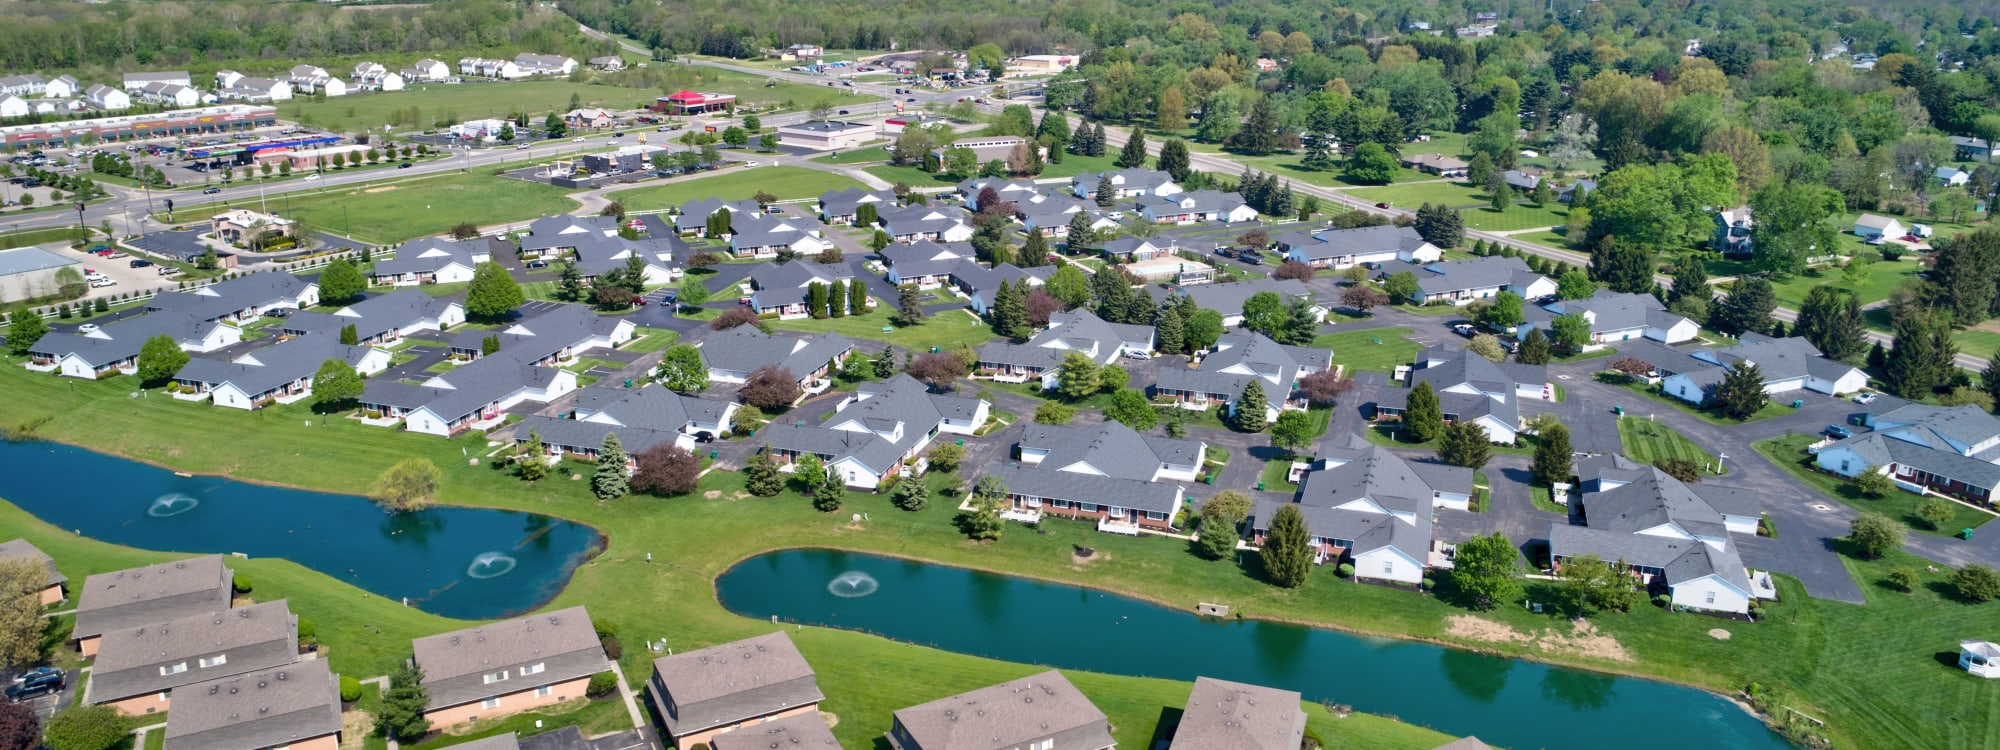 Photos of Brittany Bay Apartments and Townhomes in Groveport, Ohio